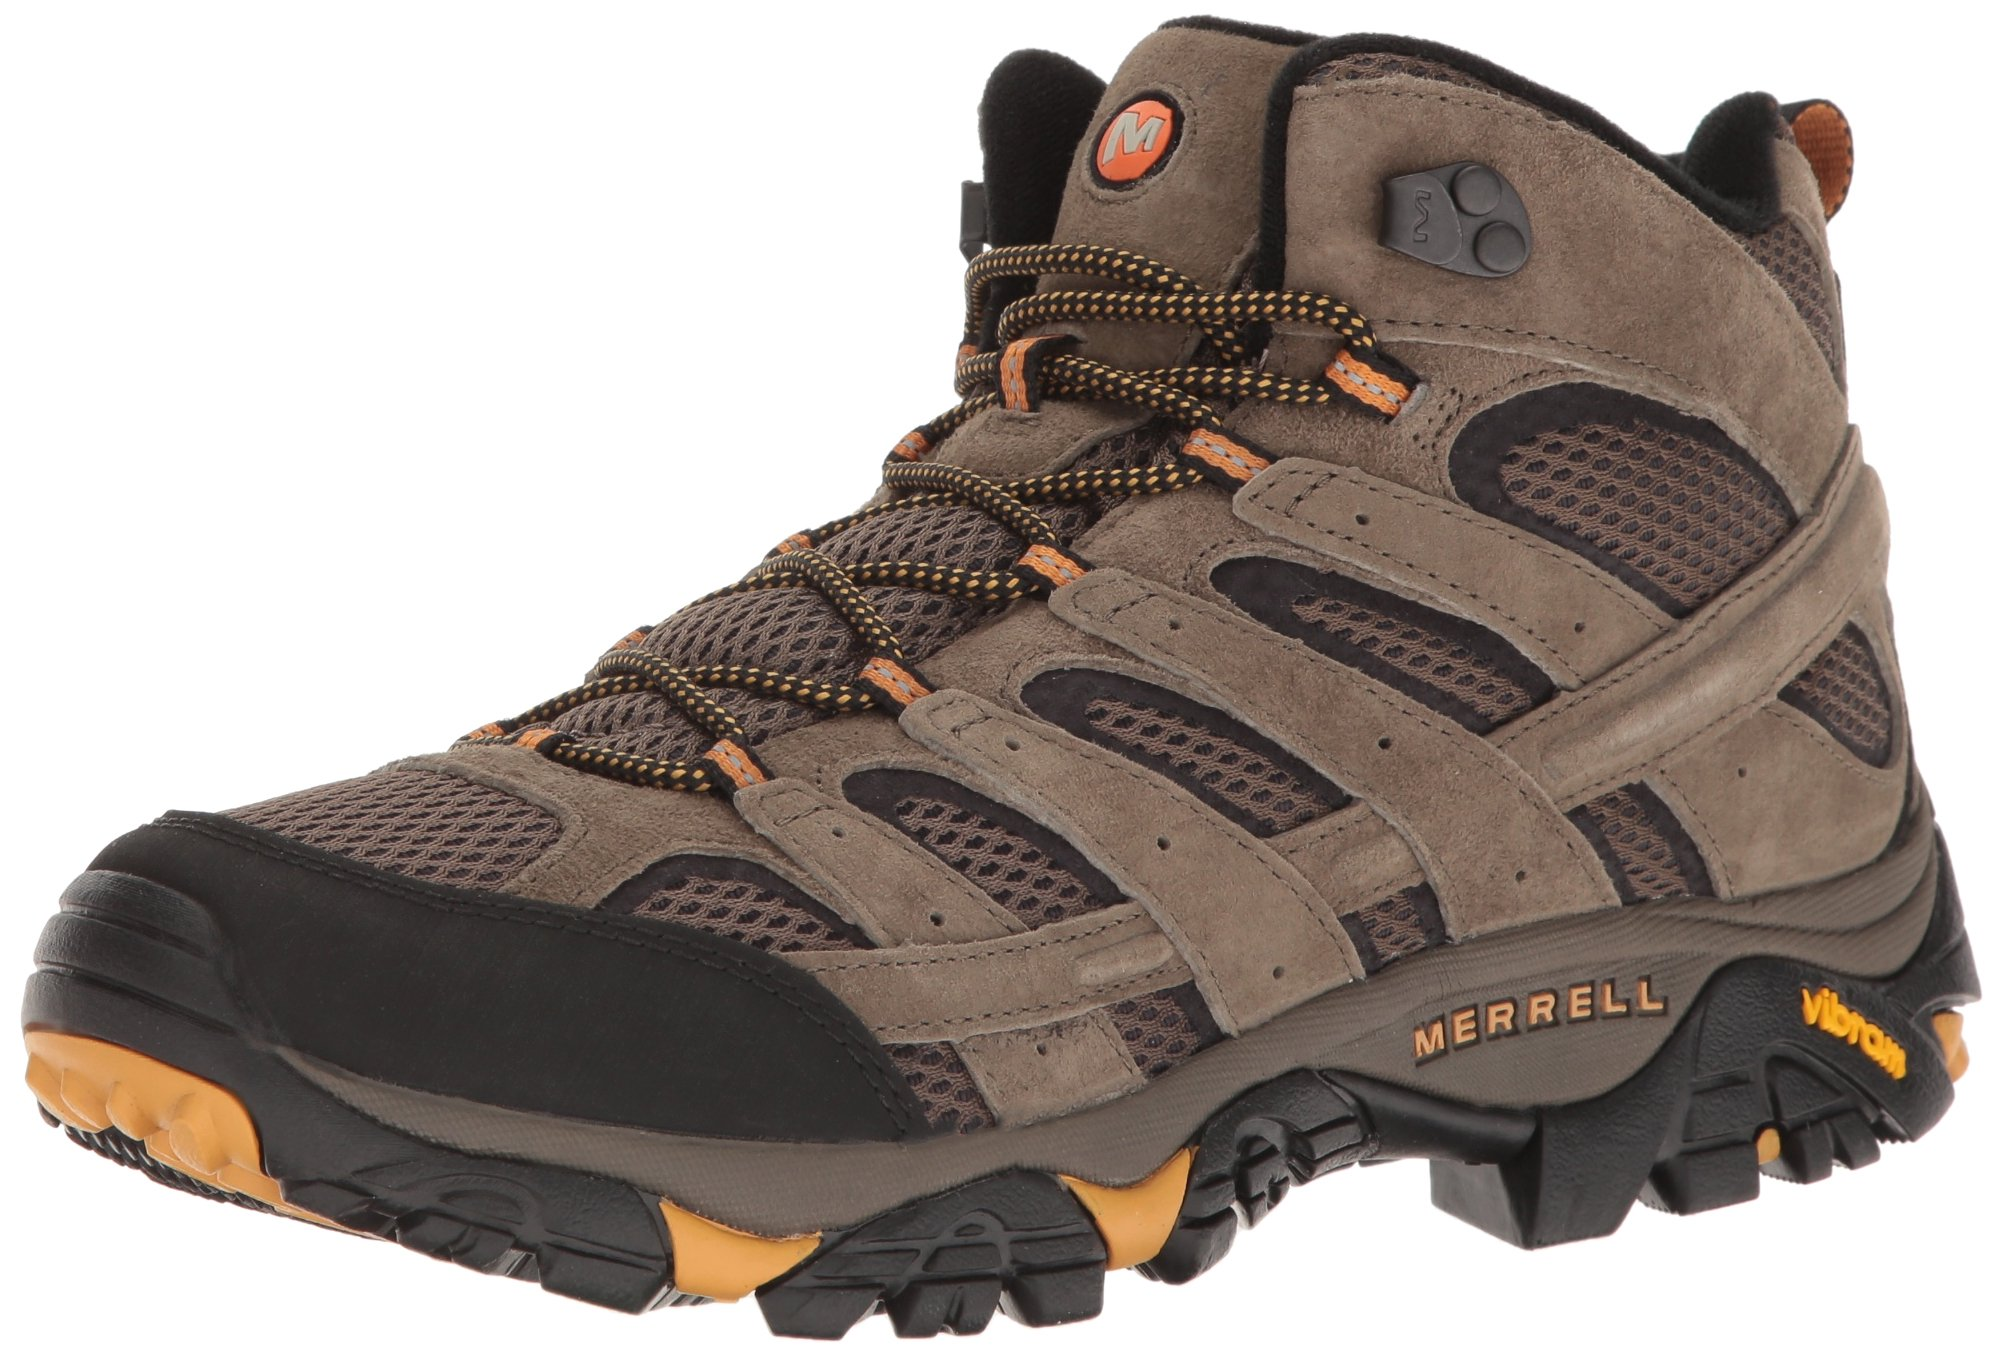 Merrell Men's Moab 2 Vent Mid Hiking Boot, Walnut, 10.5 M US by Merrell